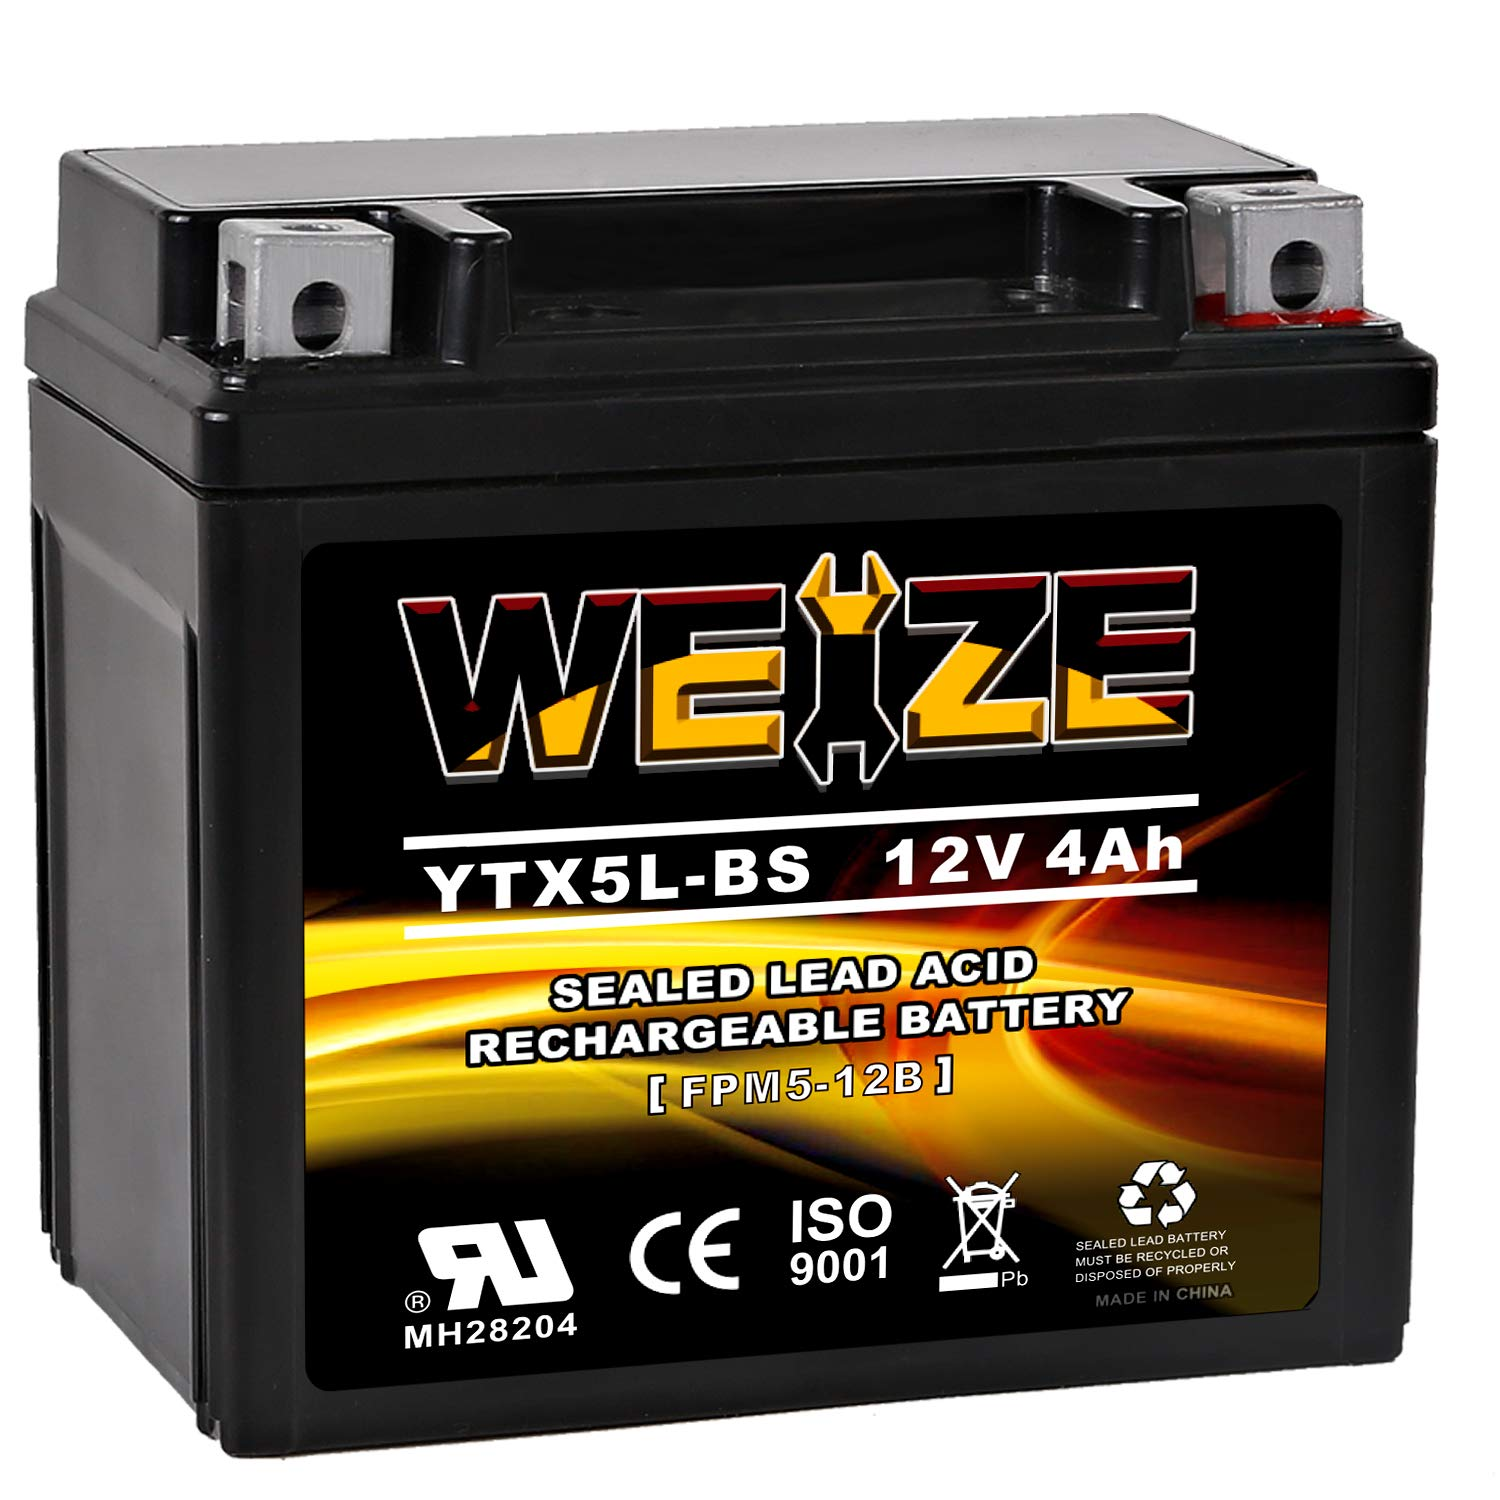 Sealed AGM Motorcycle CTX5L Battery Replacement For Honda YUASA Yamaha ETX5L BS Batteries Maintenance Free Weize YTX5L-BS High Performance